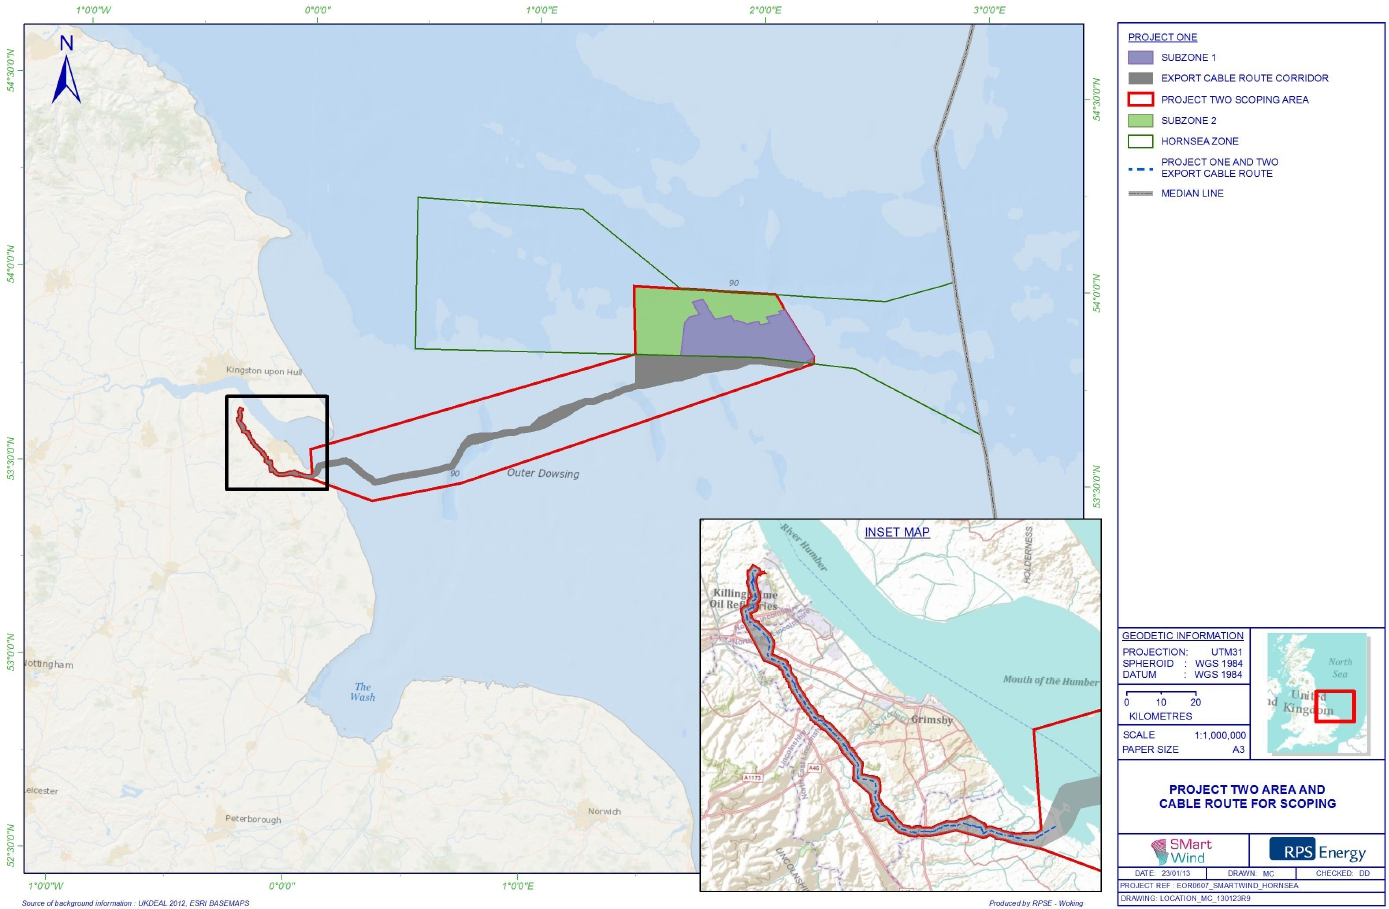 DONG ENERGY remporte Hornsea Project Two en divisant par 2 ... Hornsea Project One